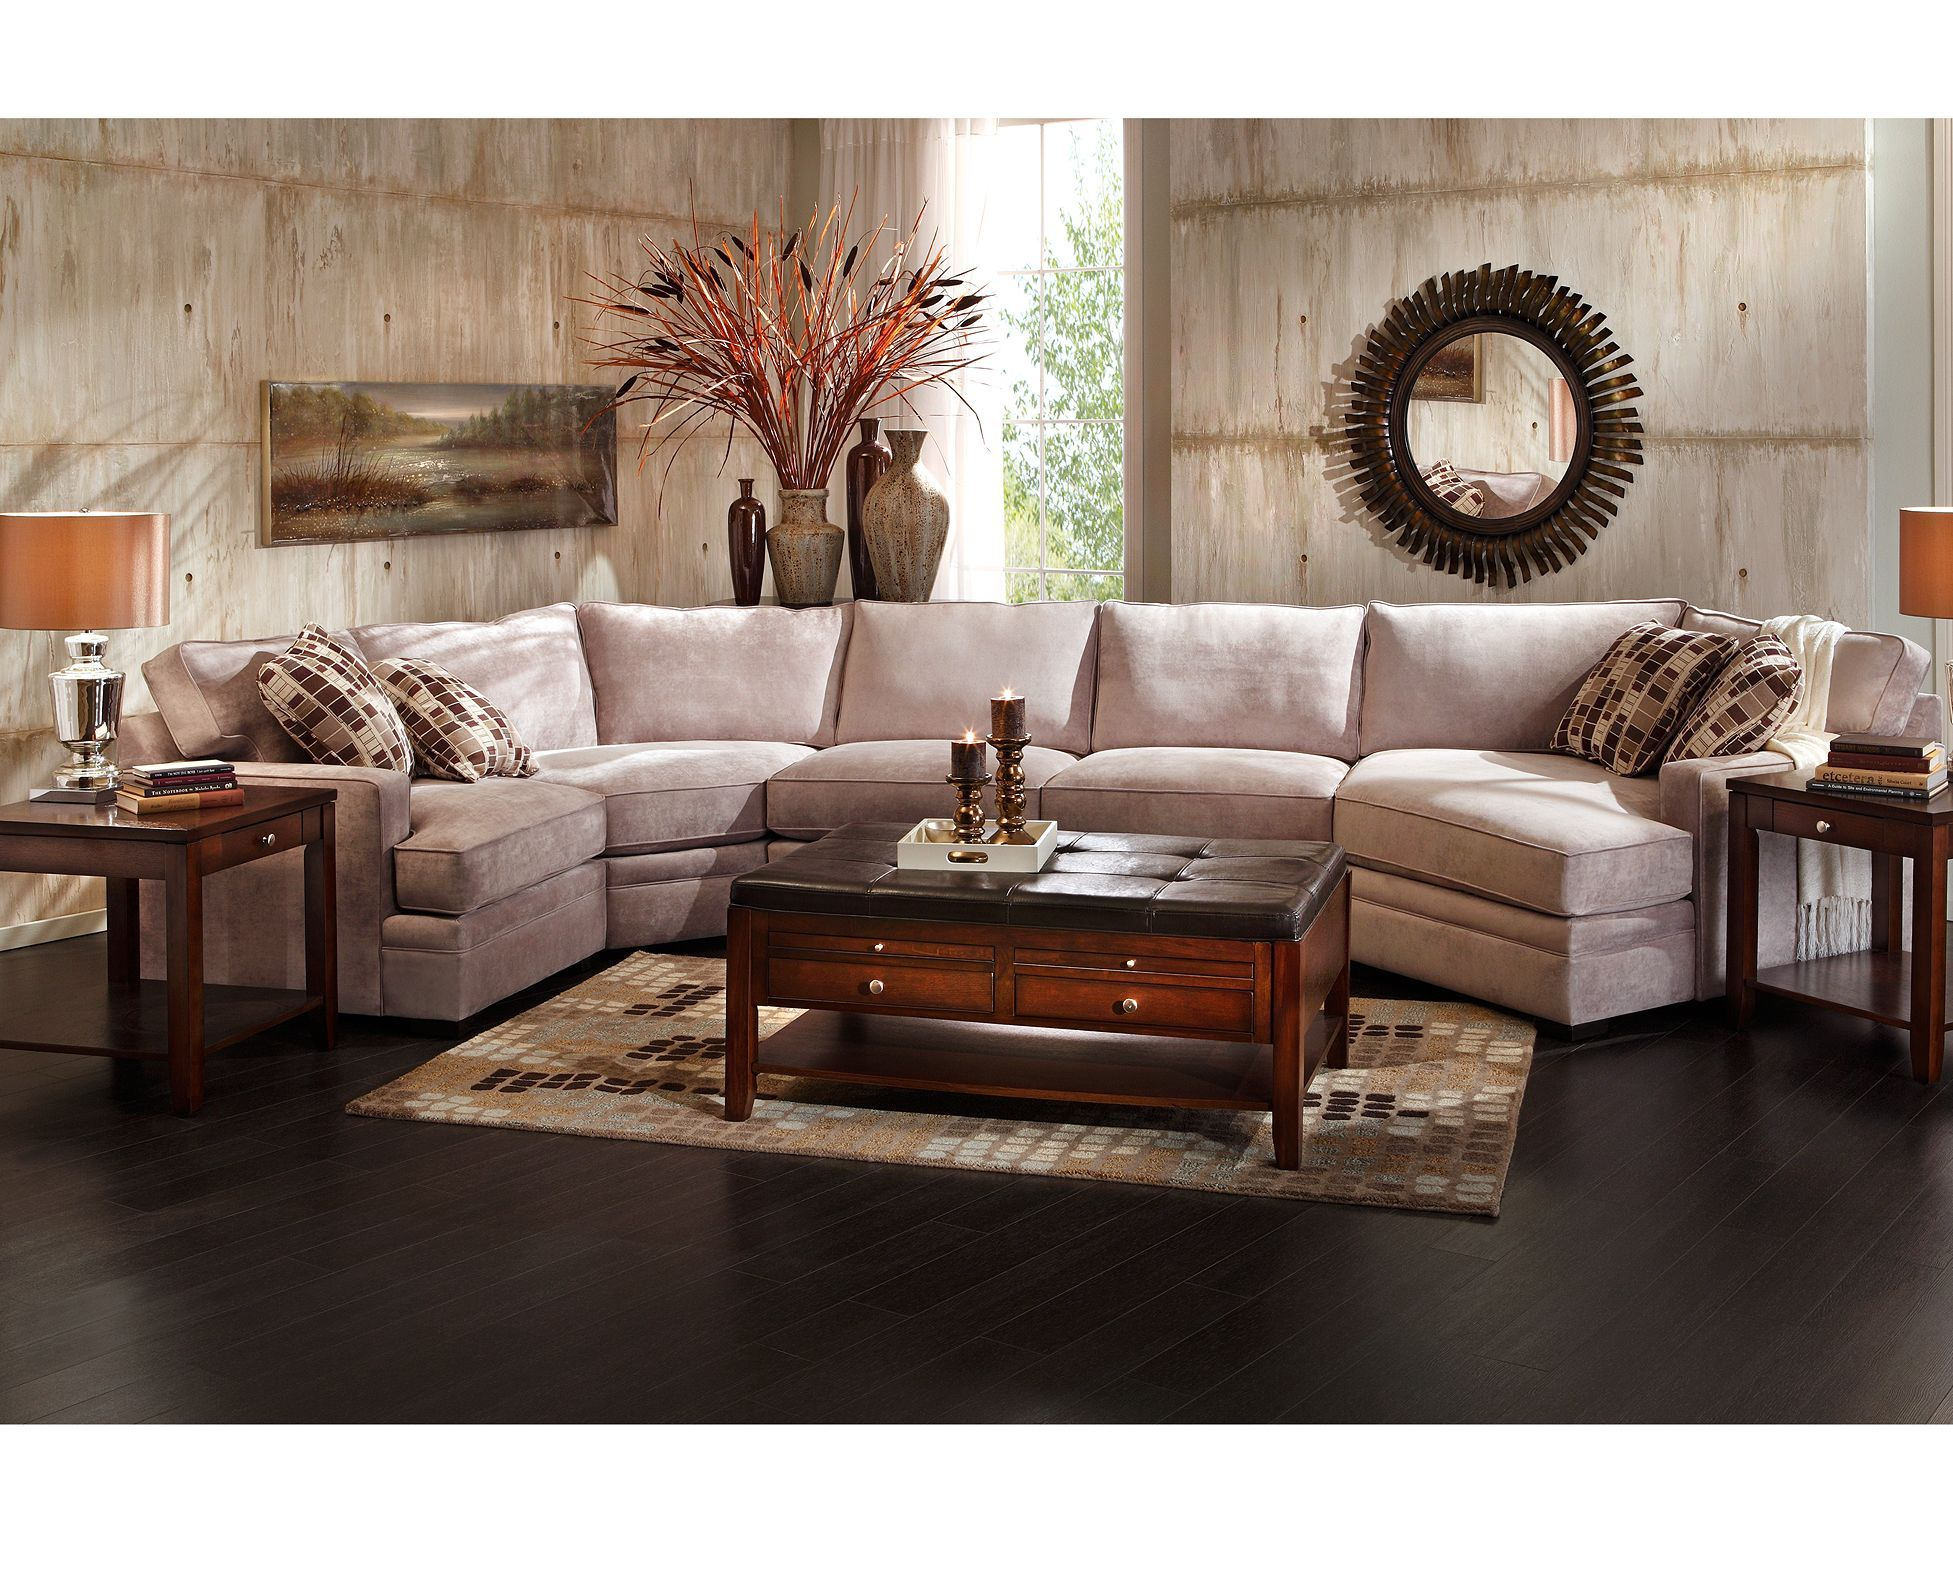 Glenwood 4 Pc Sectional Sofa Mart 1